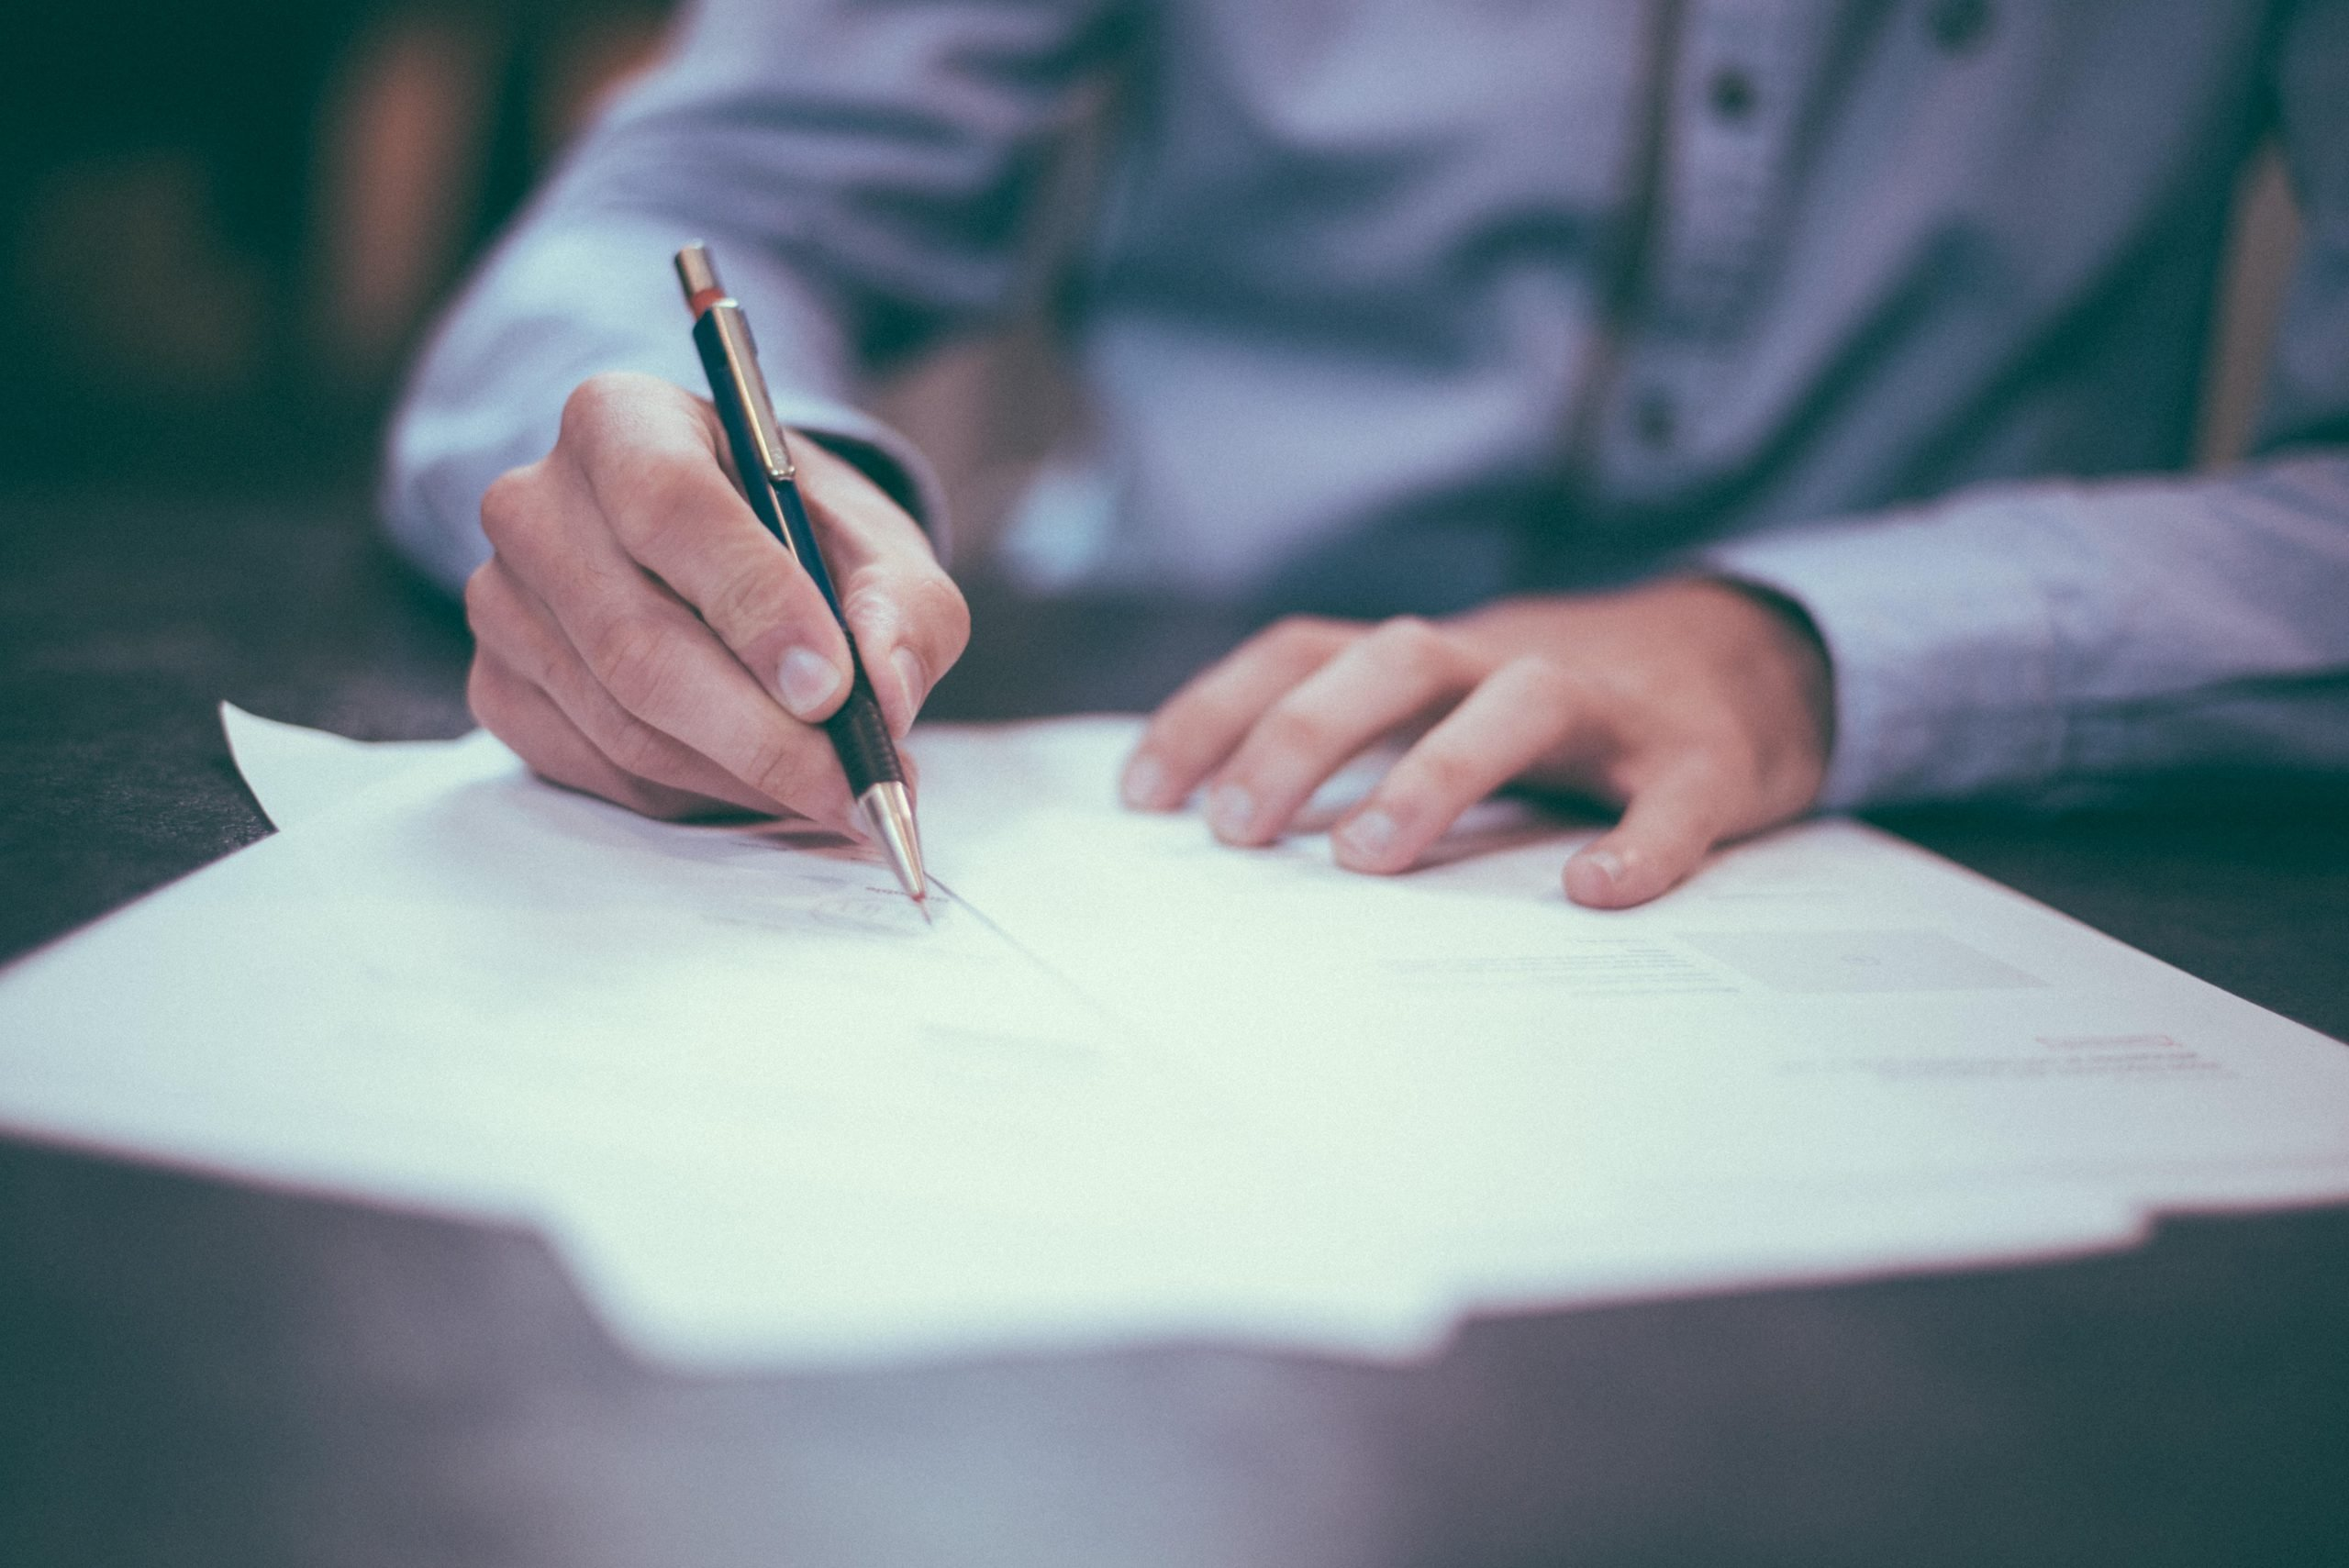 a person signing an insurance policy